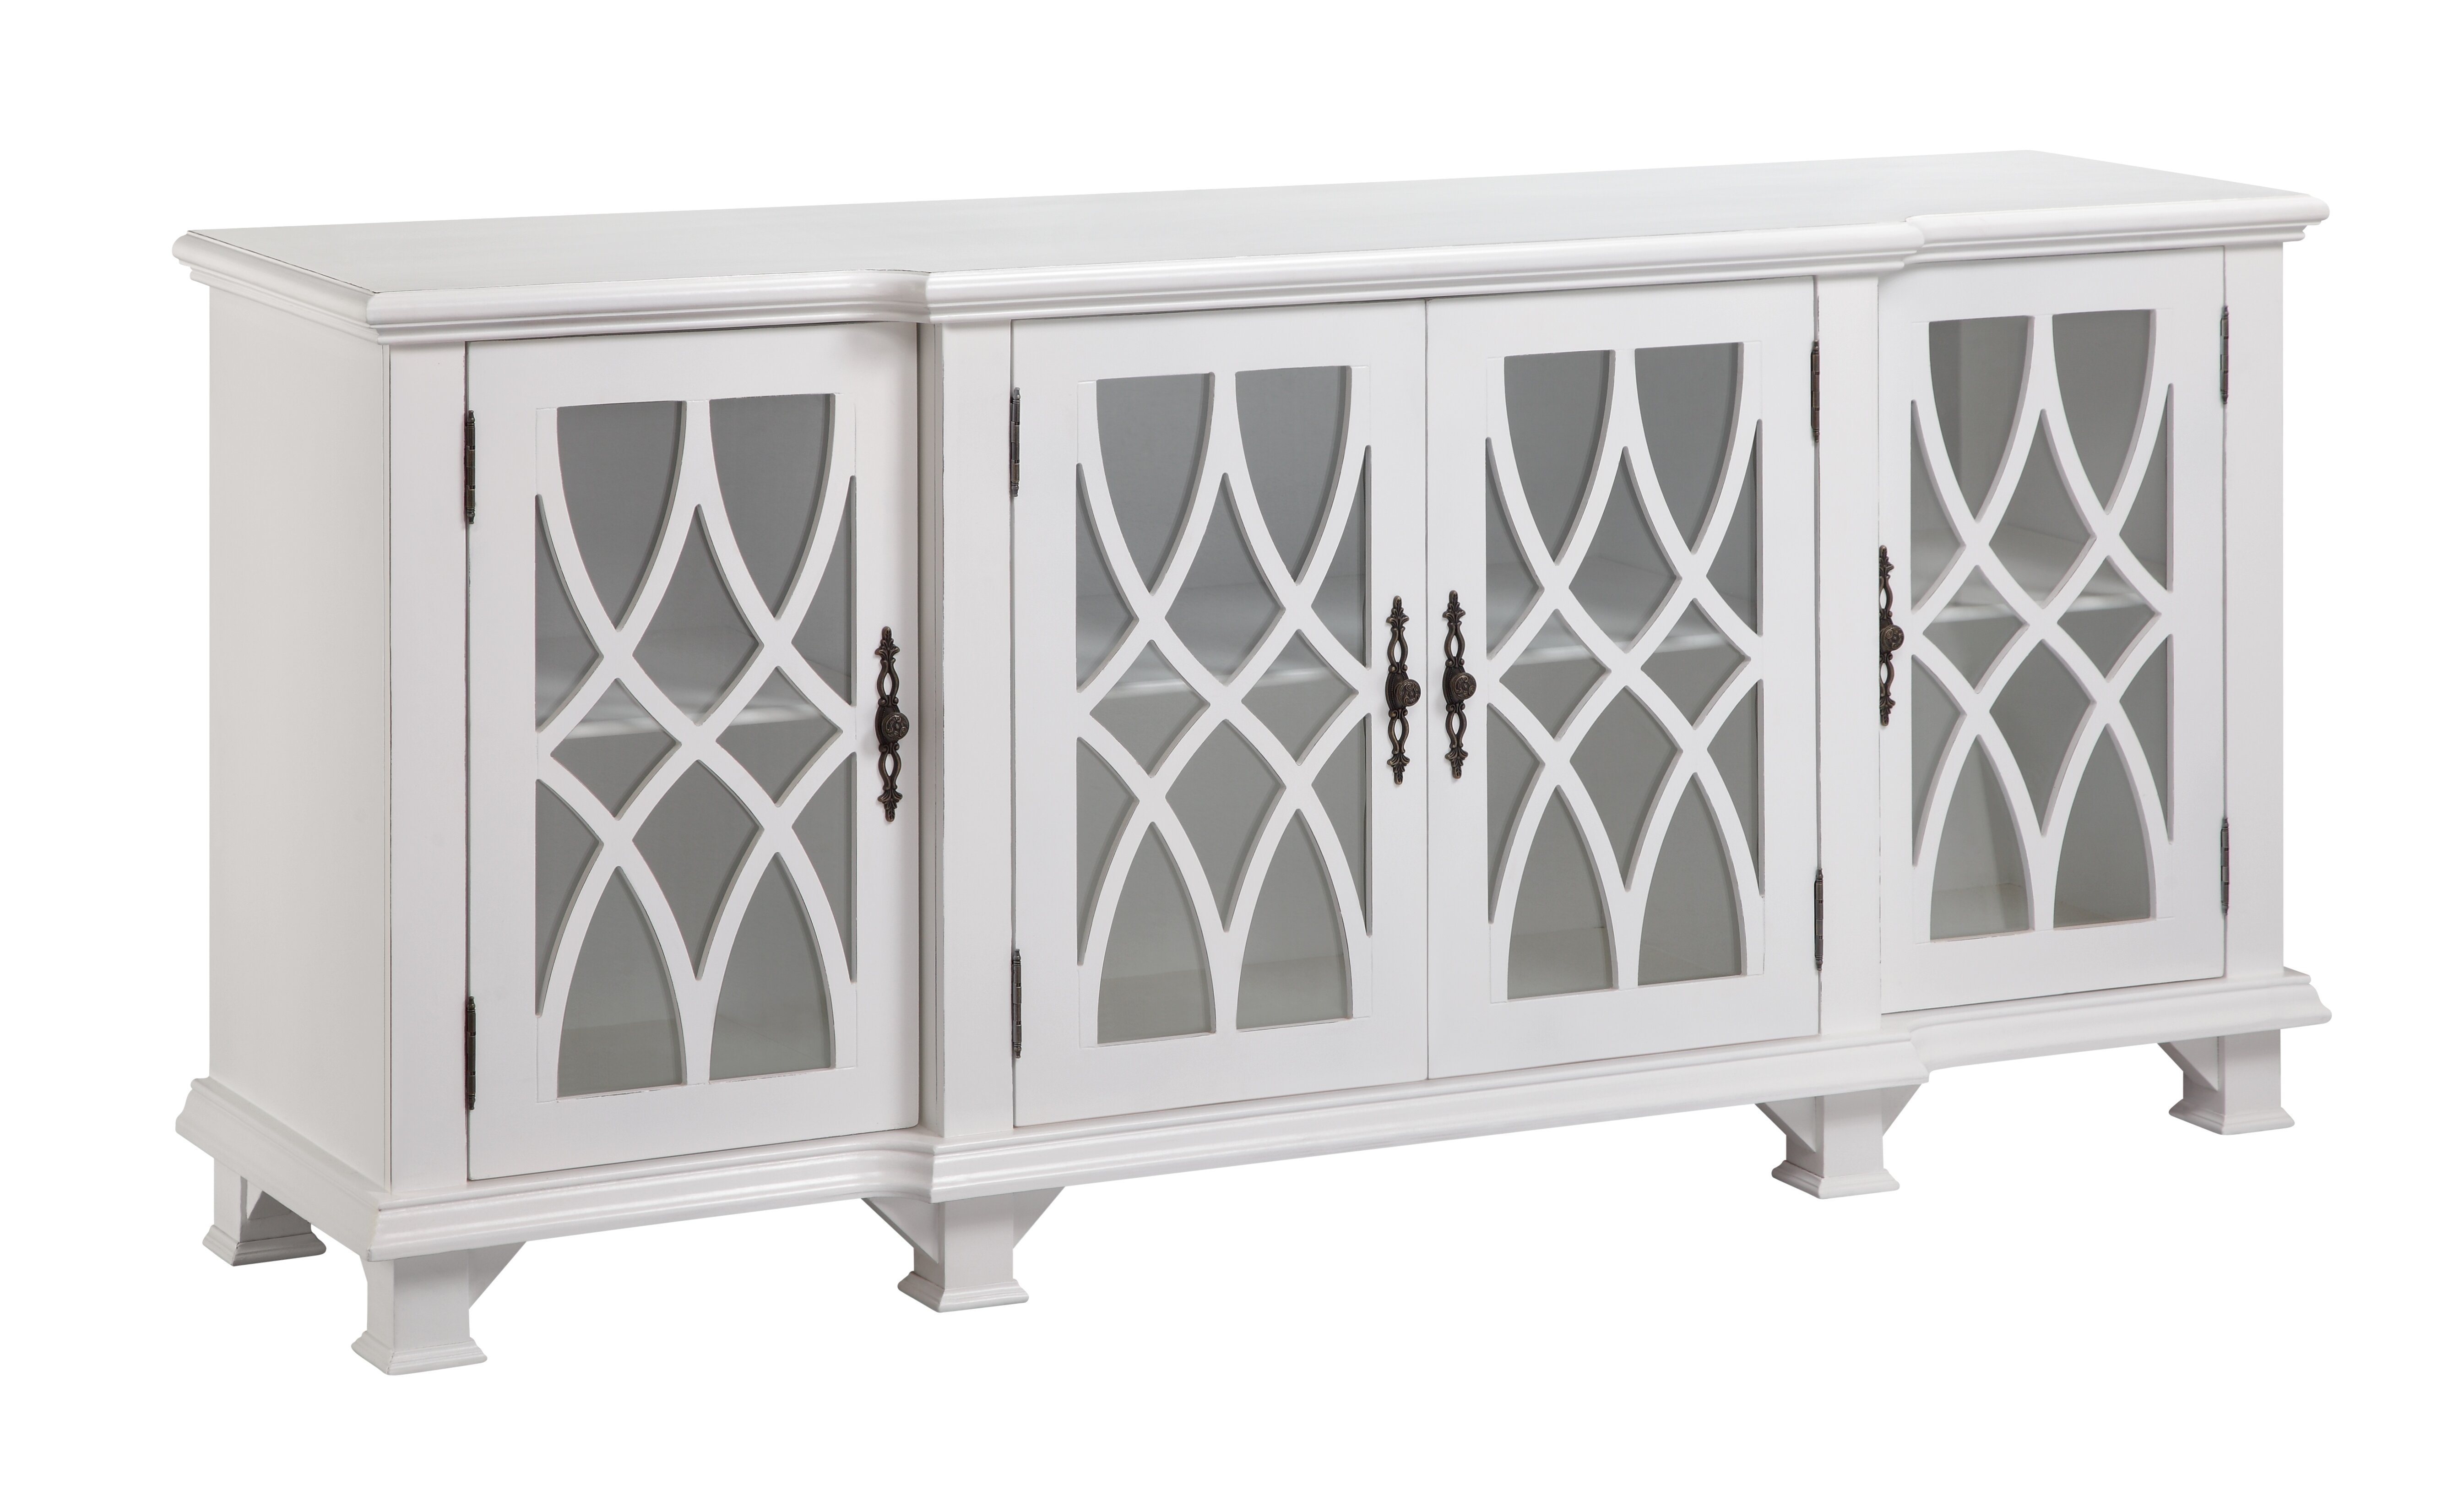 Highland Dunes Tott And Eling Sideboard & Reviews | Wayfair.ca intended for Papadopoulos Sideboards (Image 13 of 30)